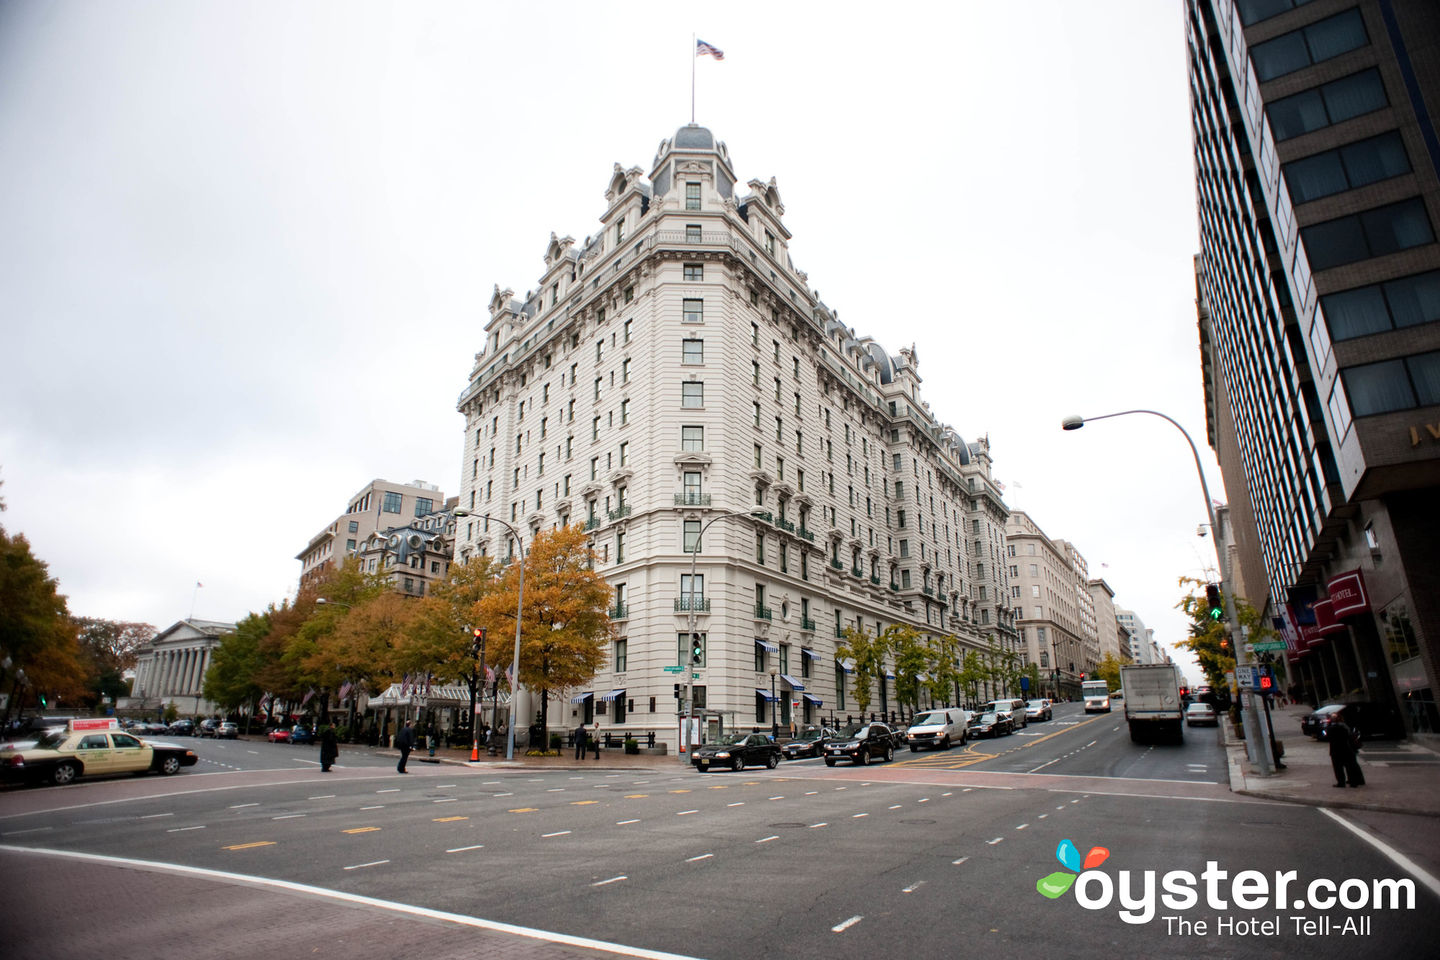 Albero Di Natale Washington Deluxe.Willard Intercontinental Washington Review What To Really Expect If You Stay